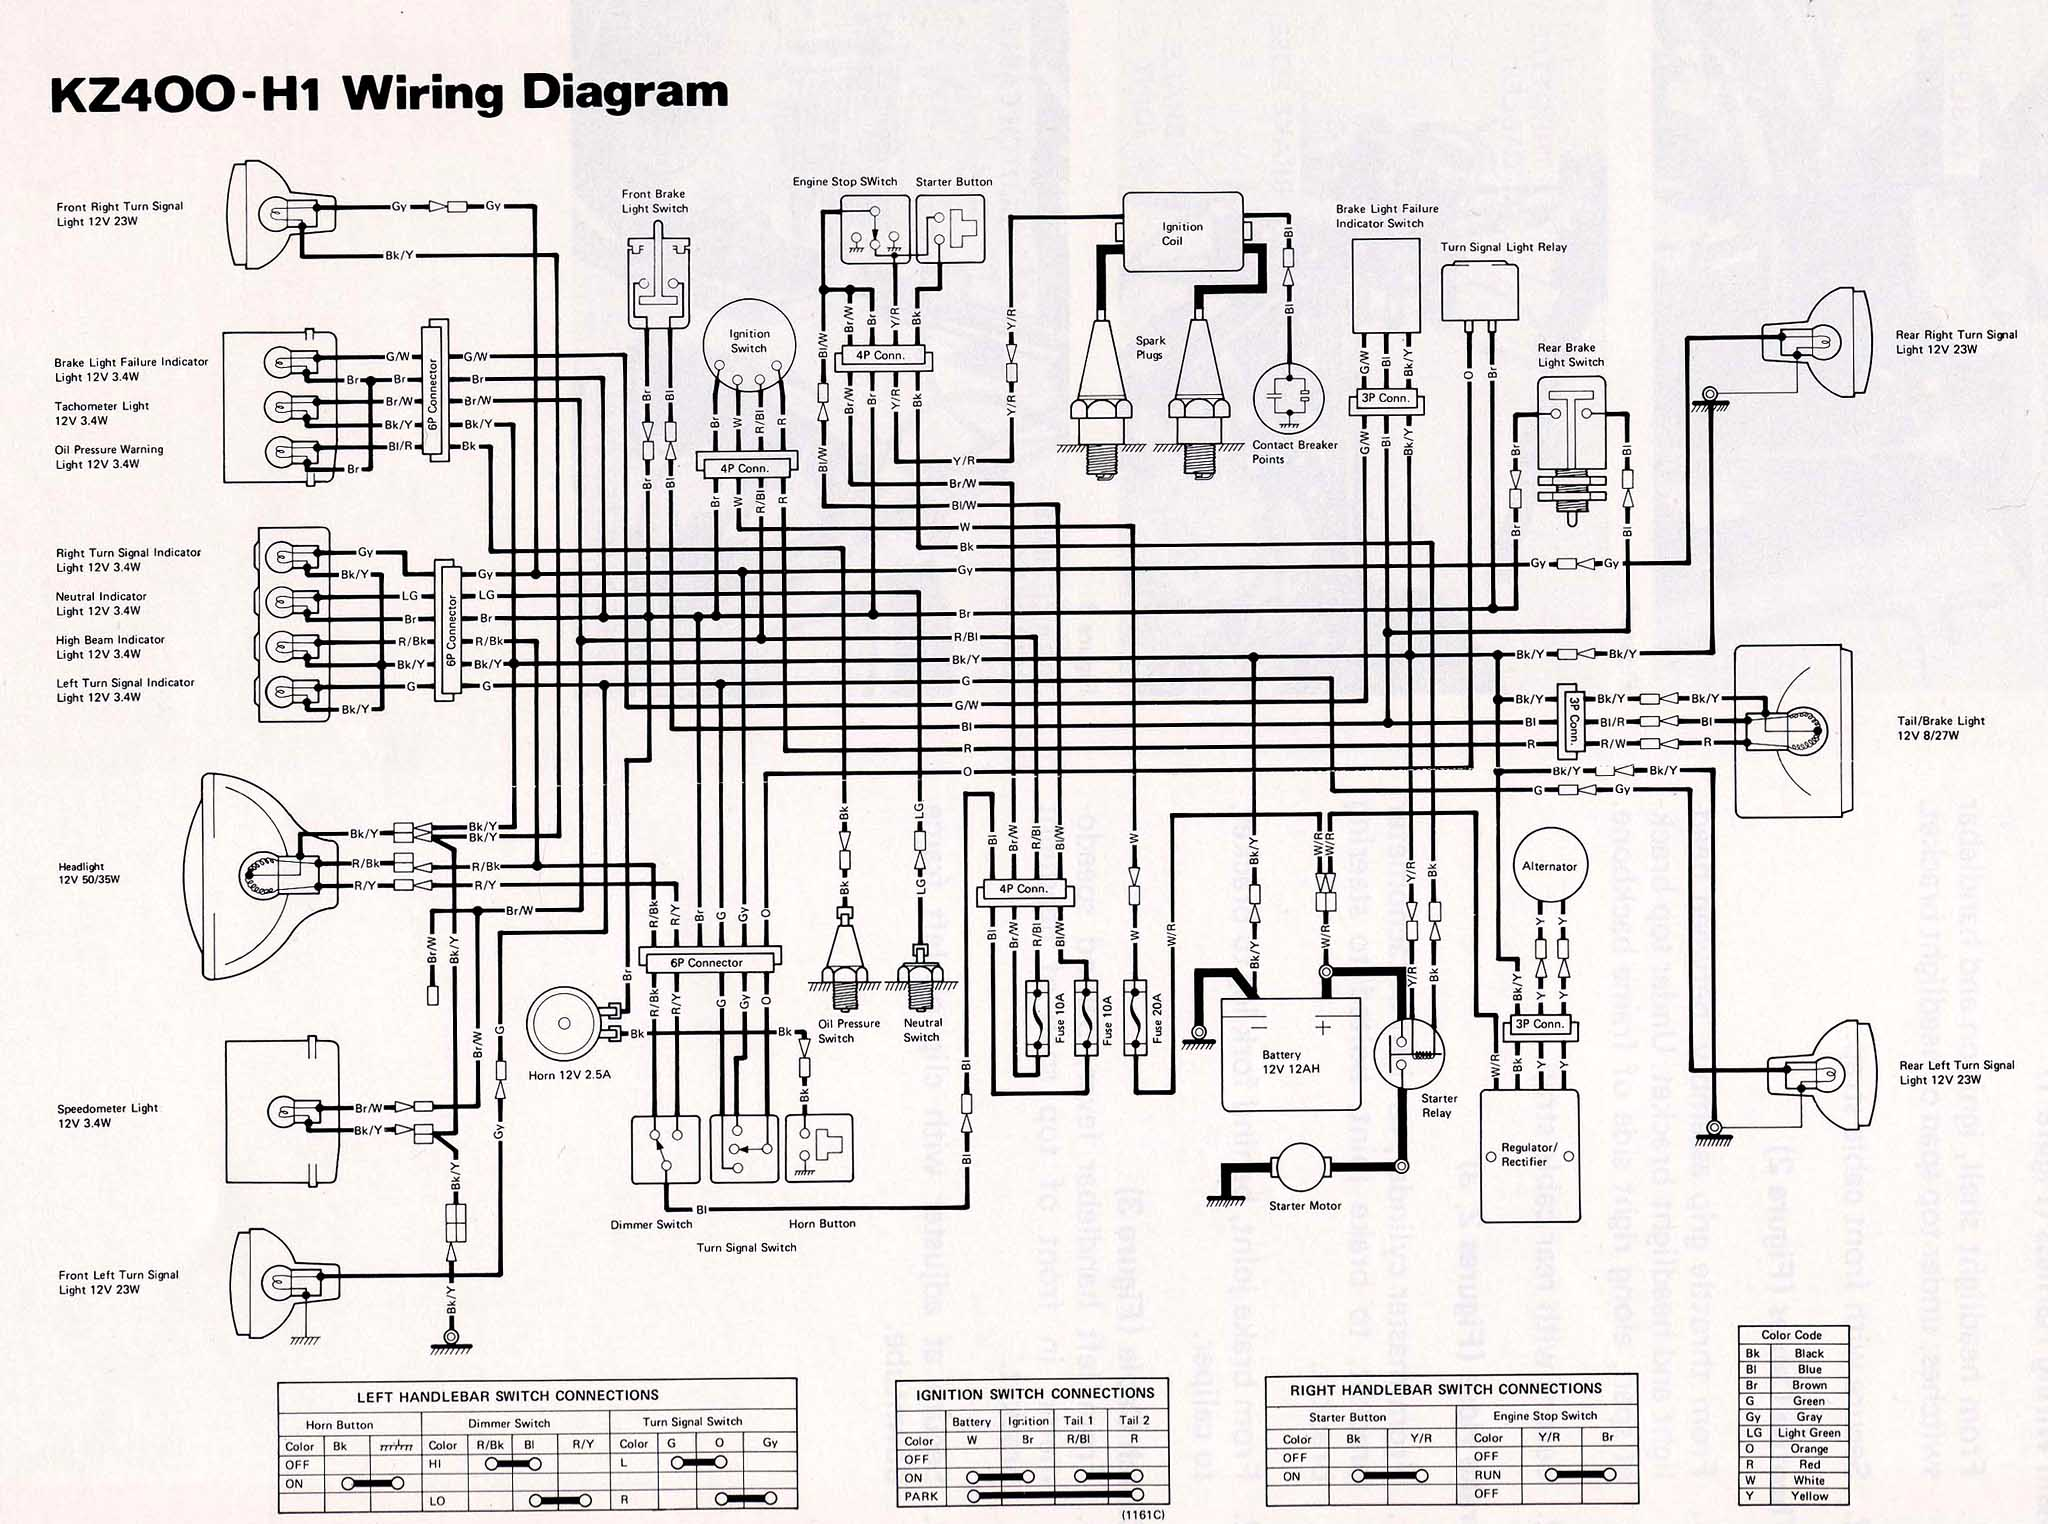 kz200 wiring diagram exclusive circuit wiring diagram u2022 rh internationalsportsoutlet co 1978 kawasaki z1r wiring diagram 1978 kawasaki kz1000 wiring diagram